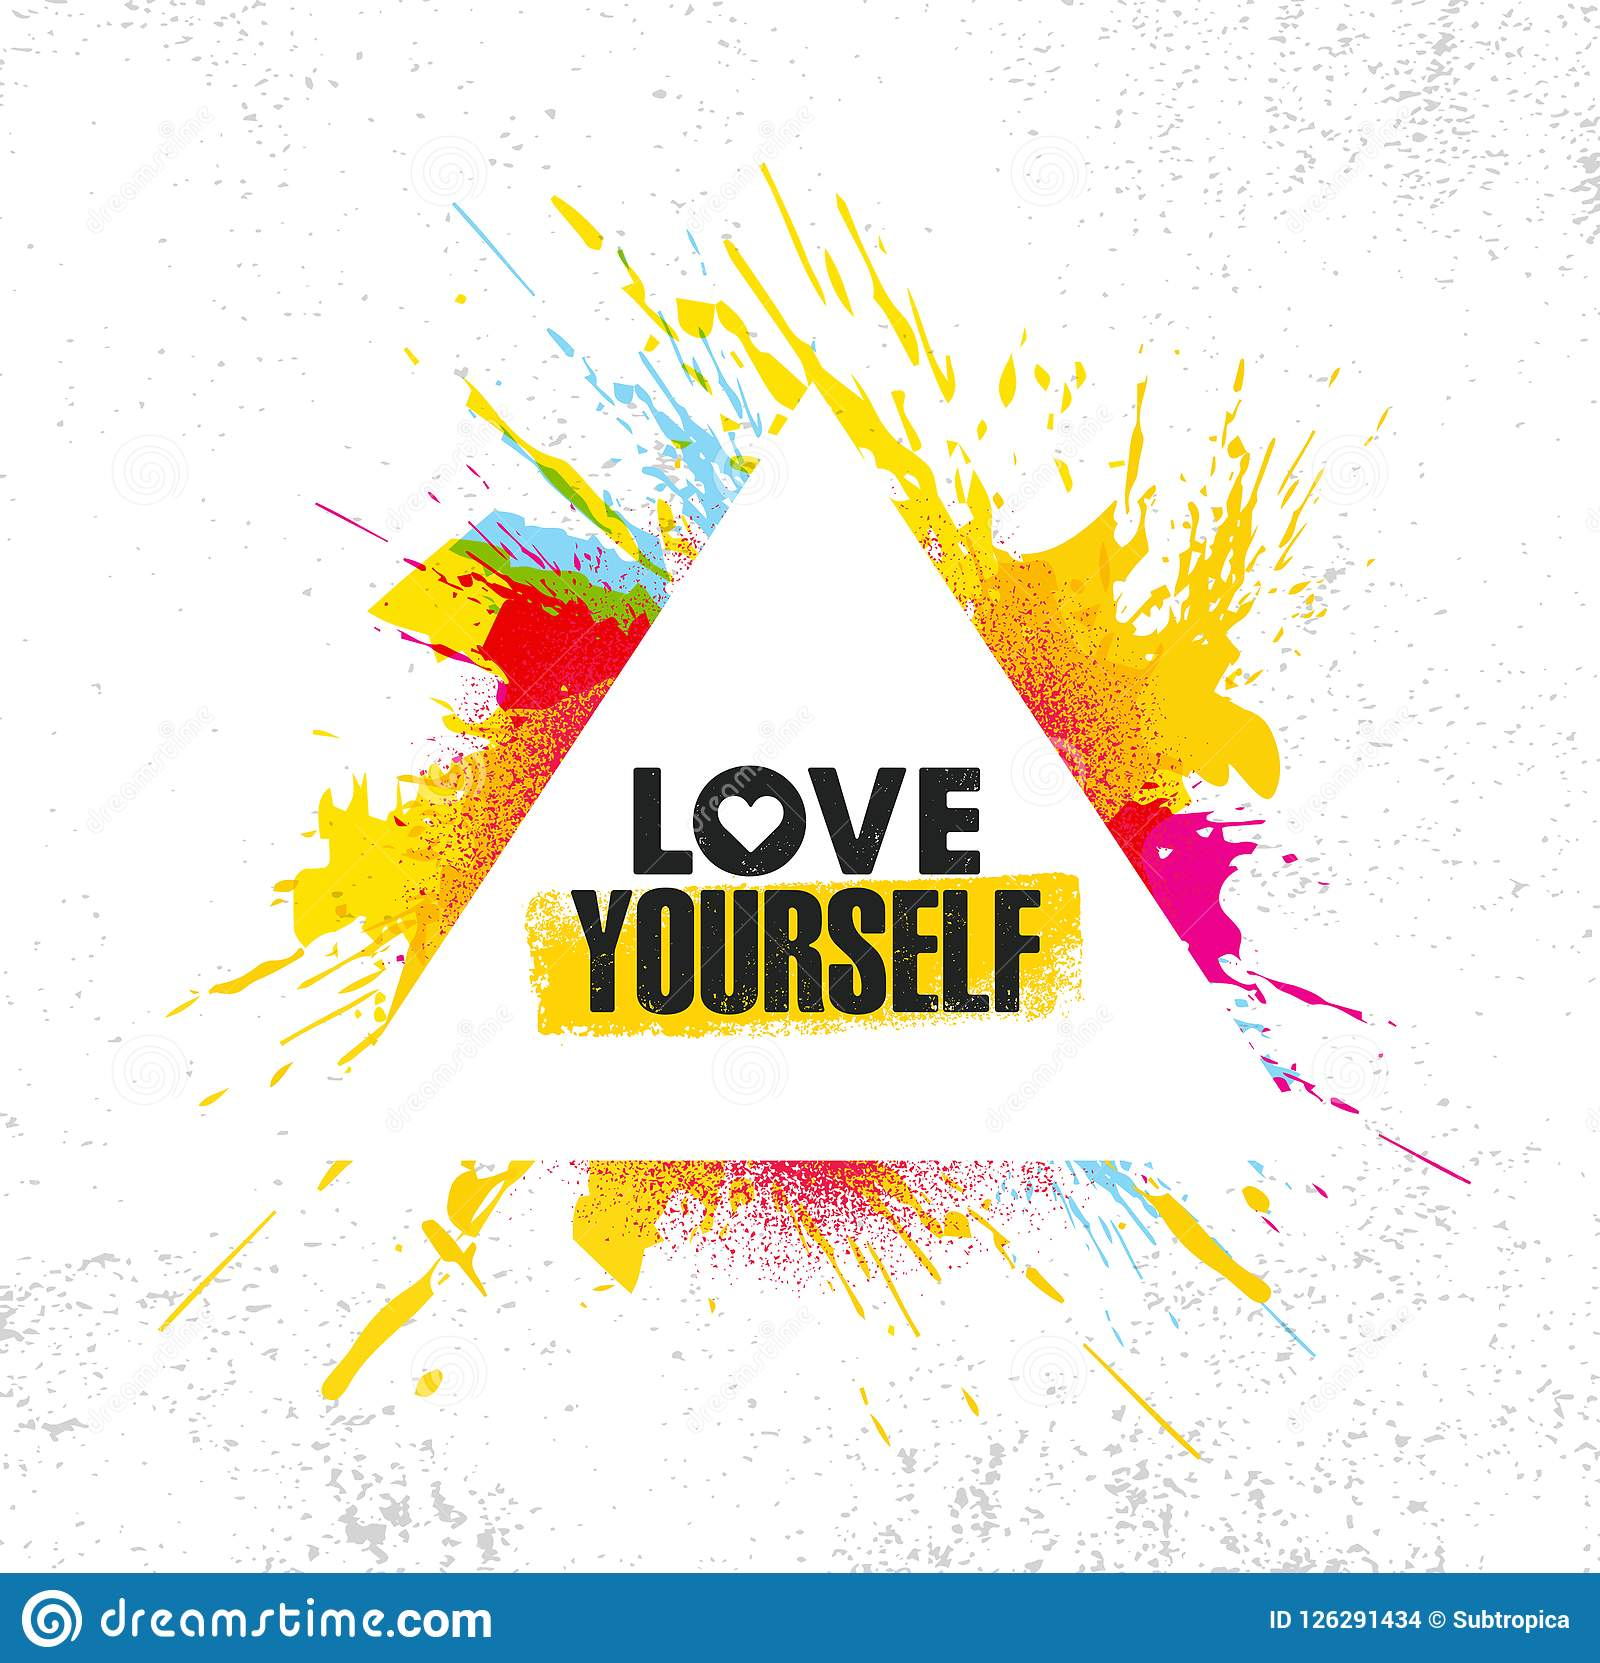 Love Yourself Inspiring Creative Motivation Quote Poster Template Vector Typography Banner Design Concept Stock Vector Illustration Of Family Icon 126291434,Wedding Henna Designs